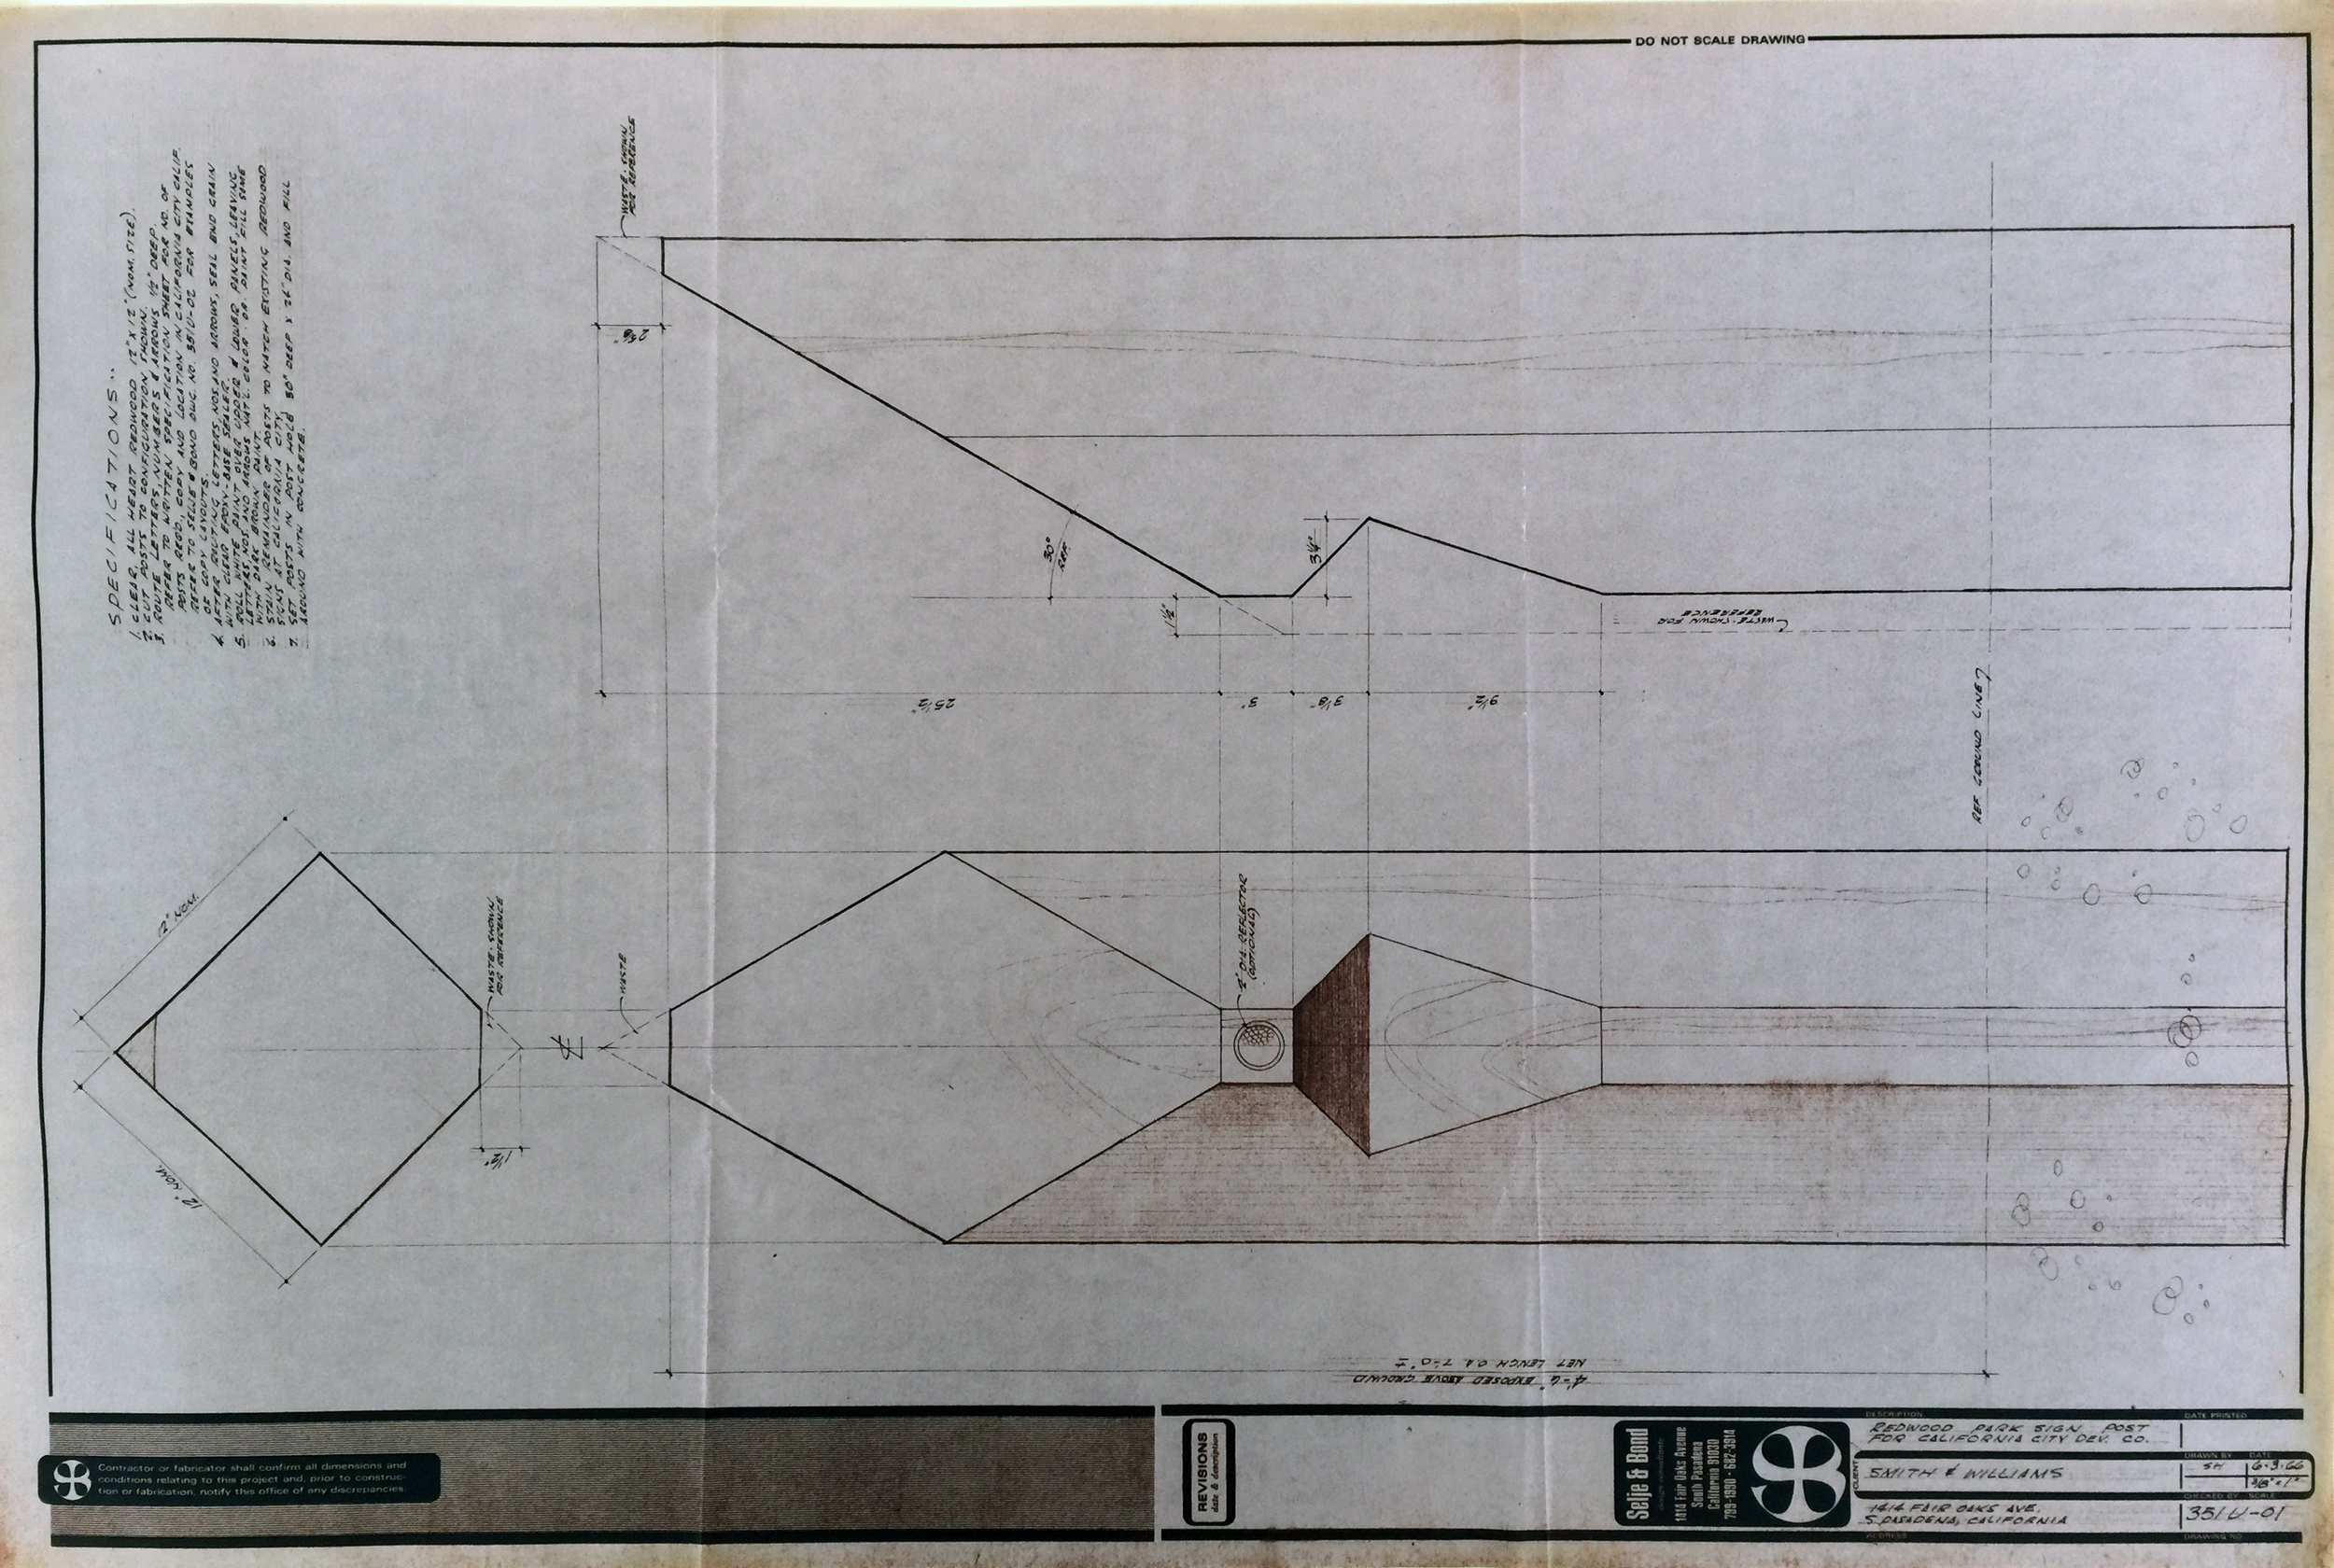 Smith and Williams, Architects and Engineers. Park Sign Post, California City. 1966. Architecture and Design Collection, University Art Museum, UCSB.